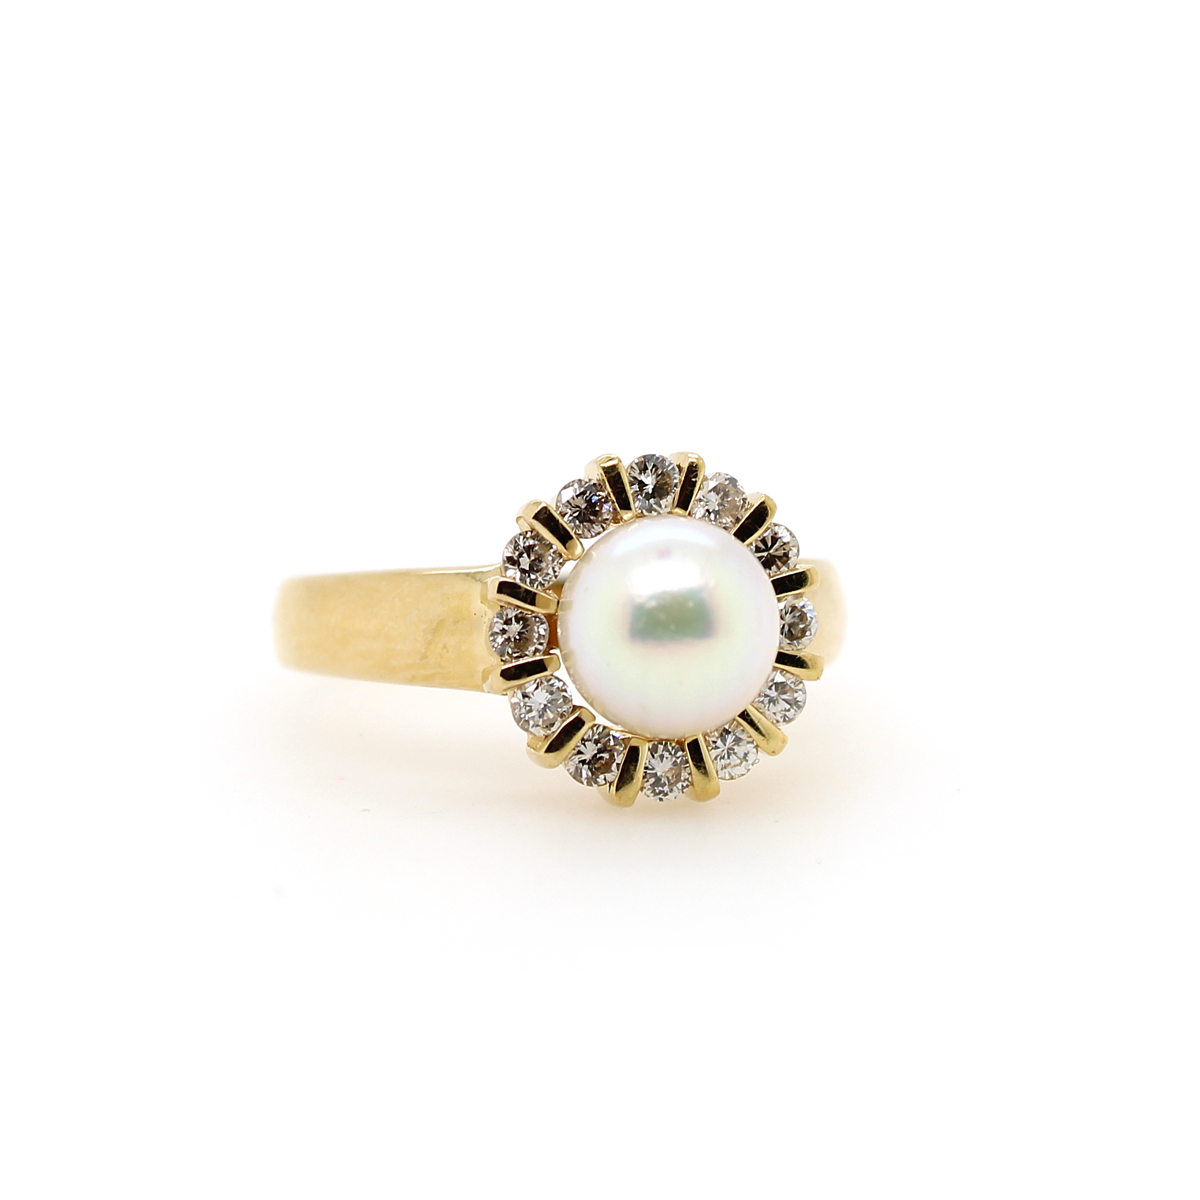 Vintage 18 Karat Yellow Gold Akoya Pearl and Diamond Ring